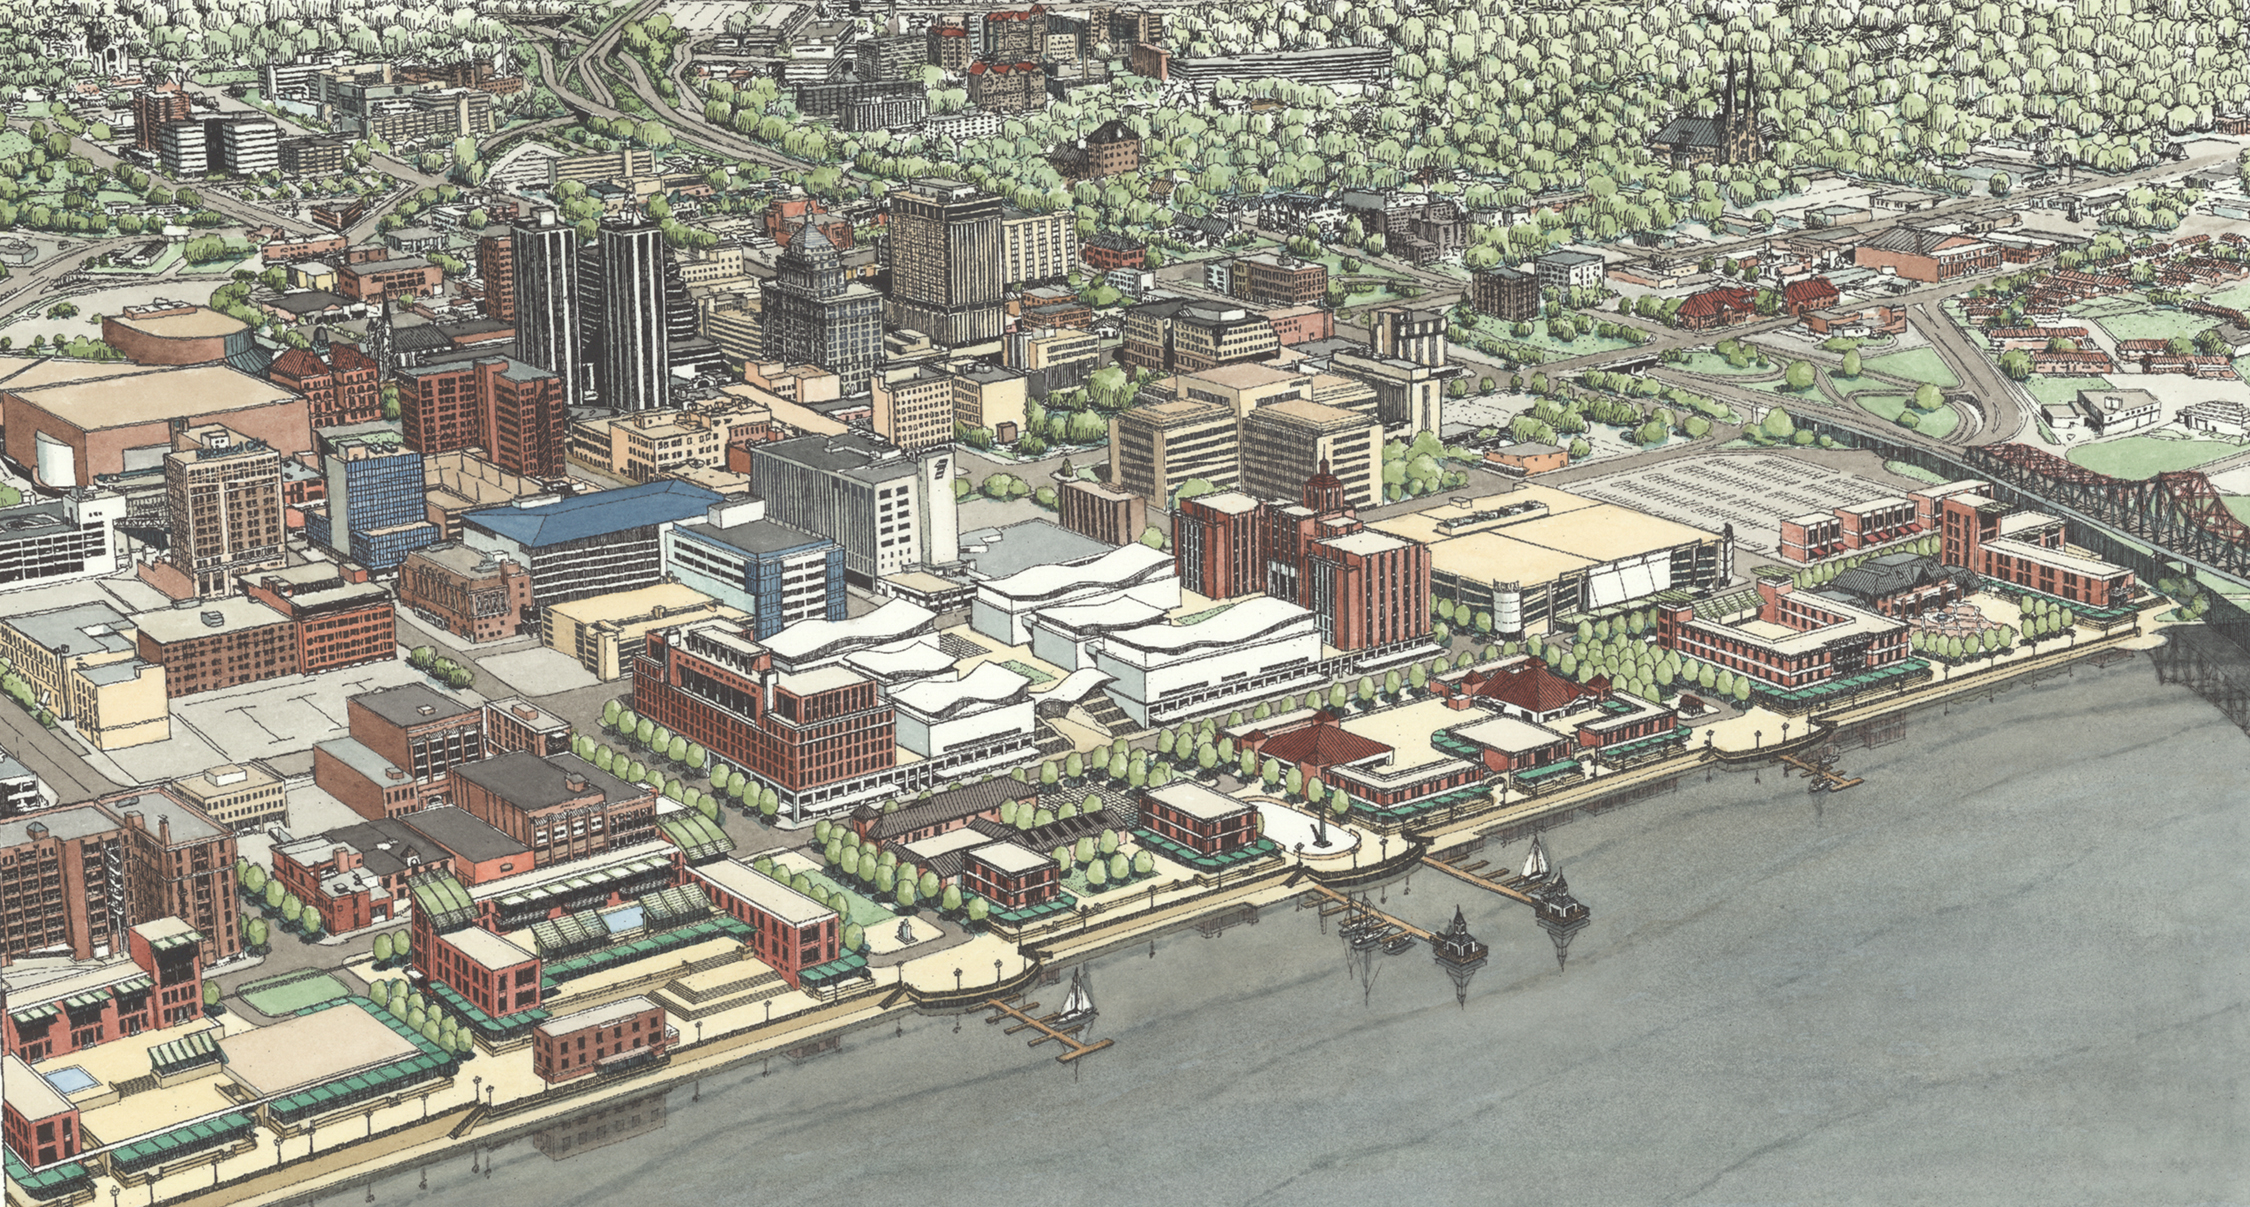 Heart of Peoria proposed conditions